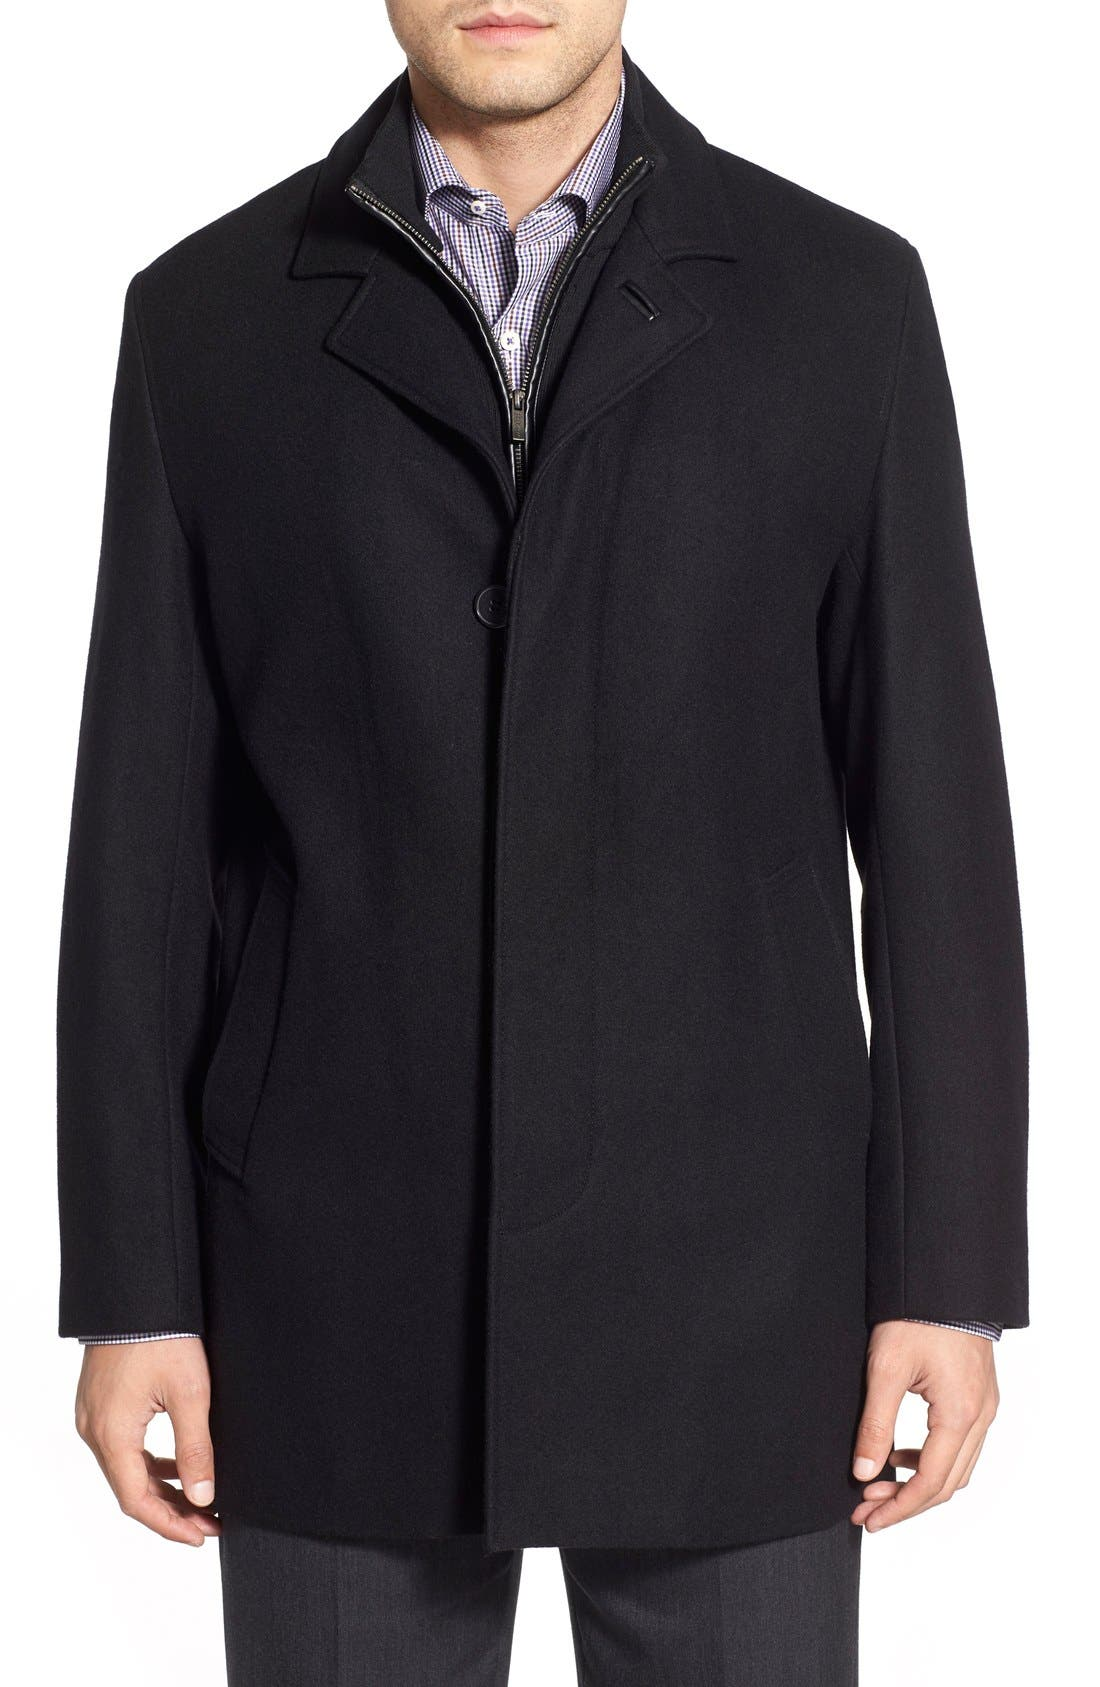 Wool Blend Topcoat with Inset Knit Bib,                         Main,                         color, BLACK